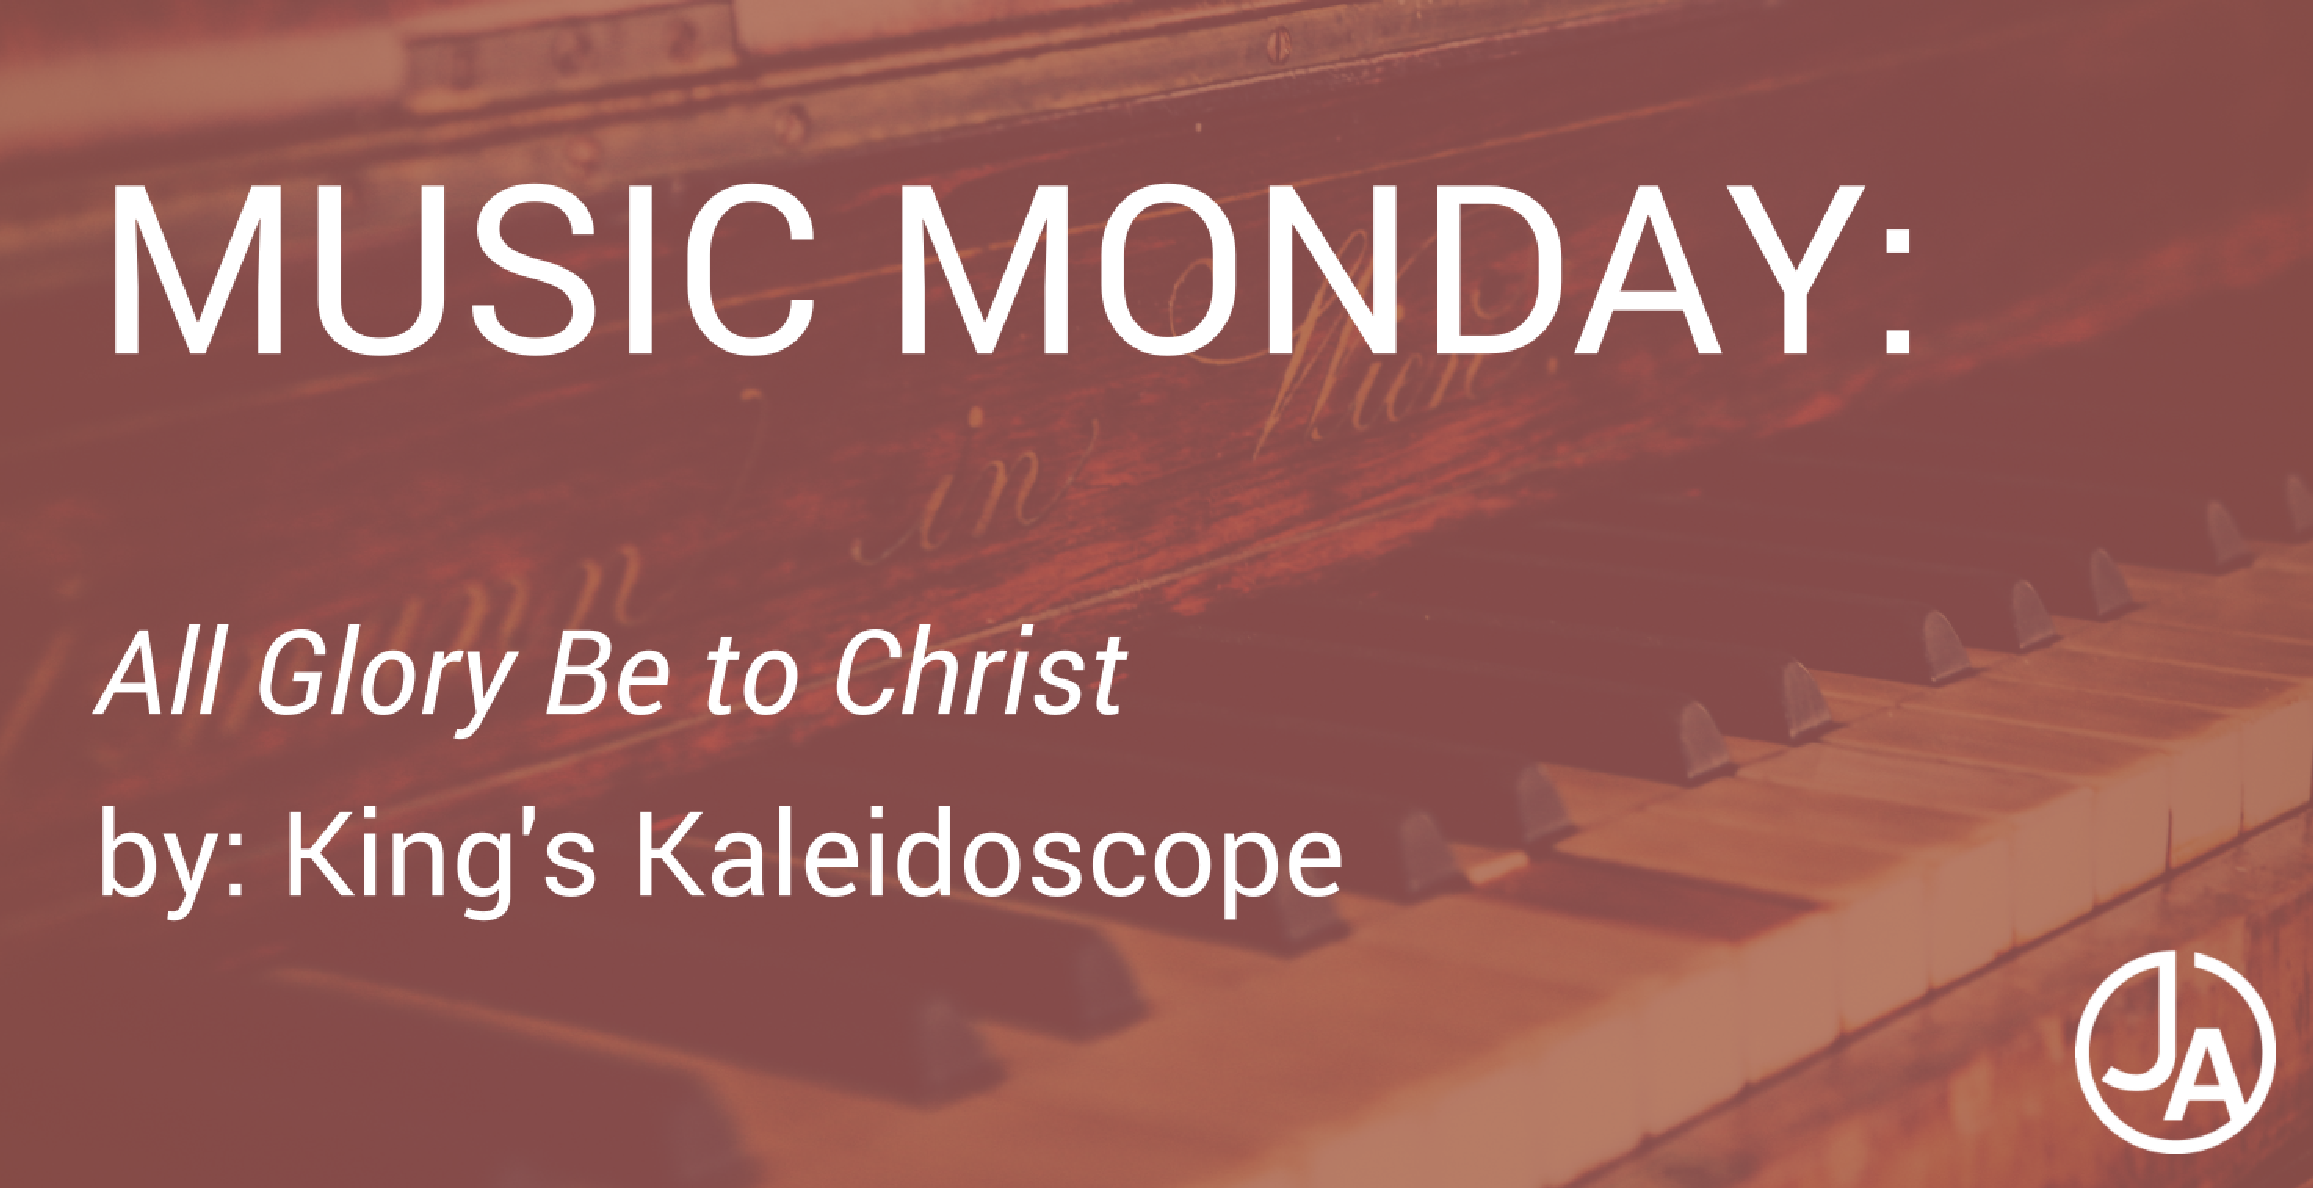 Music Monday - All Glory Be to Christ.png